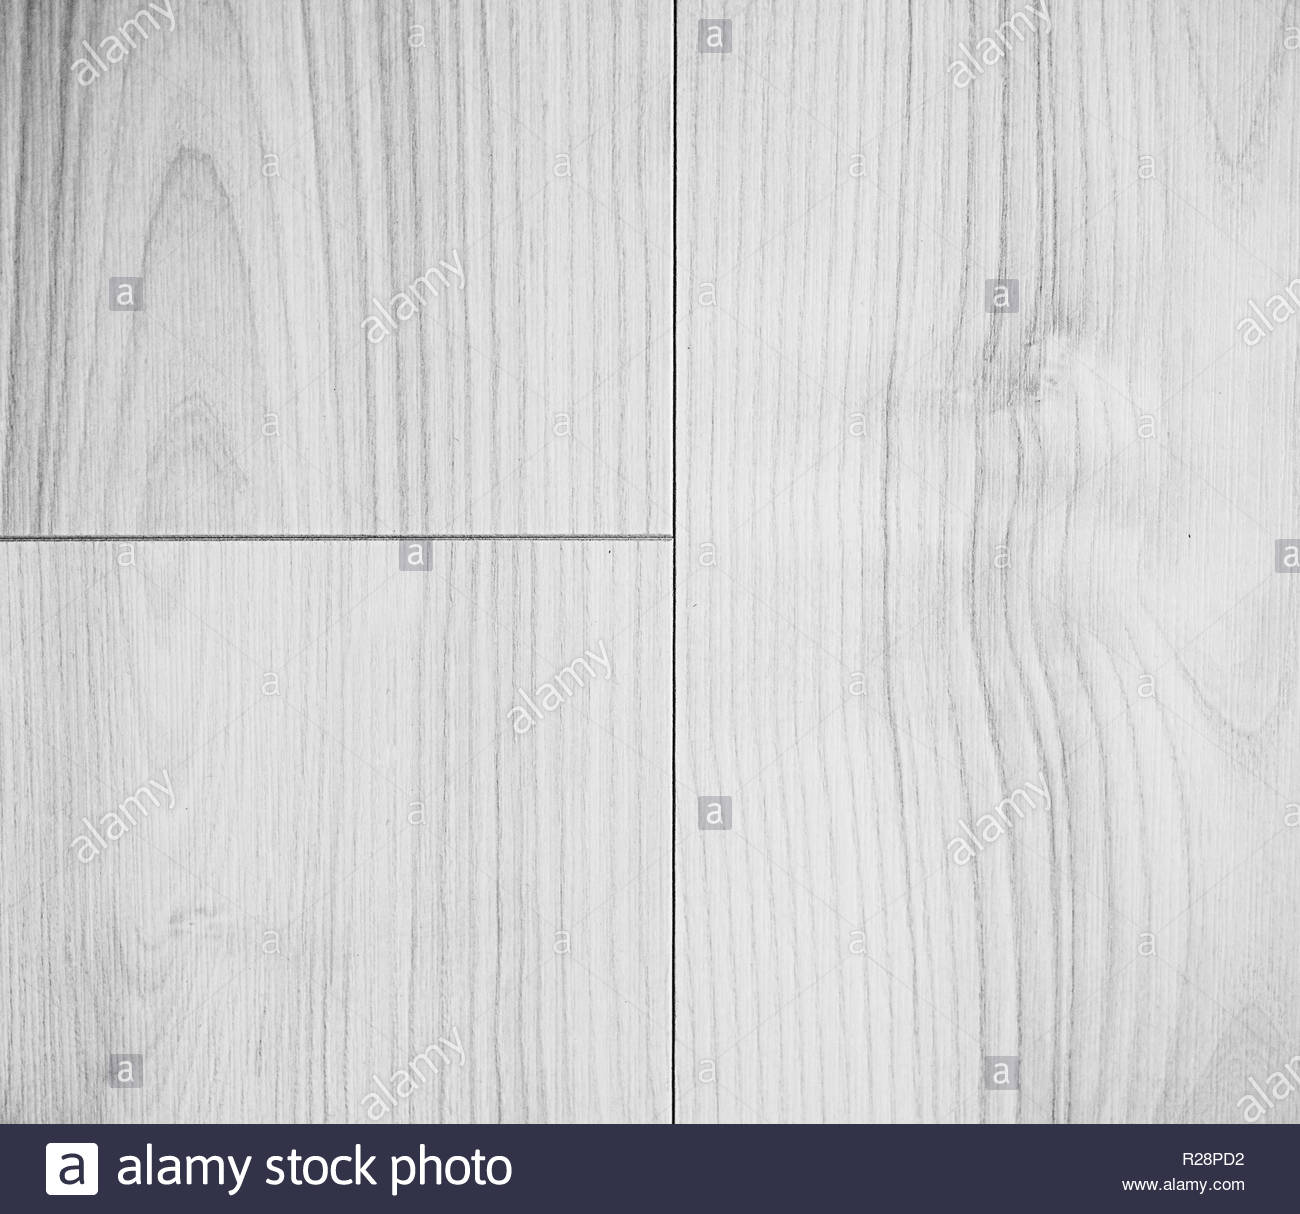 white wooden texture background - Stock Image